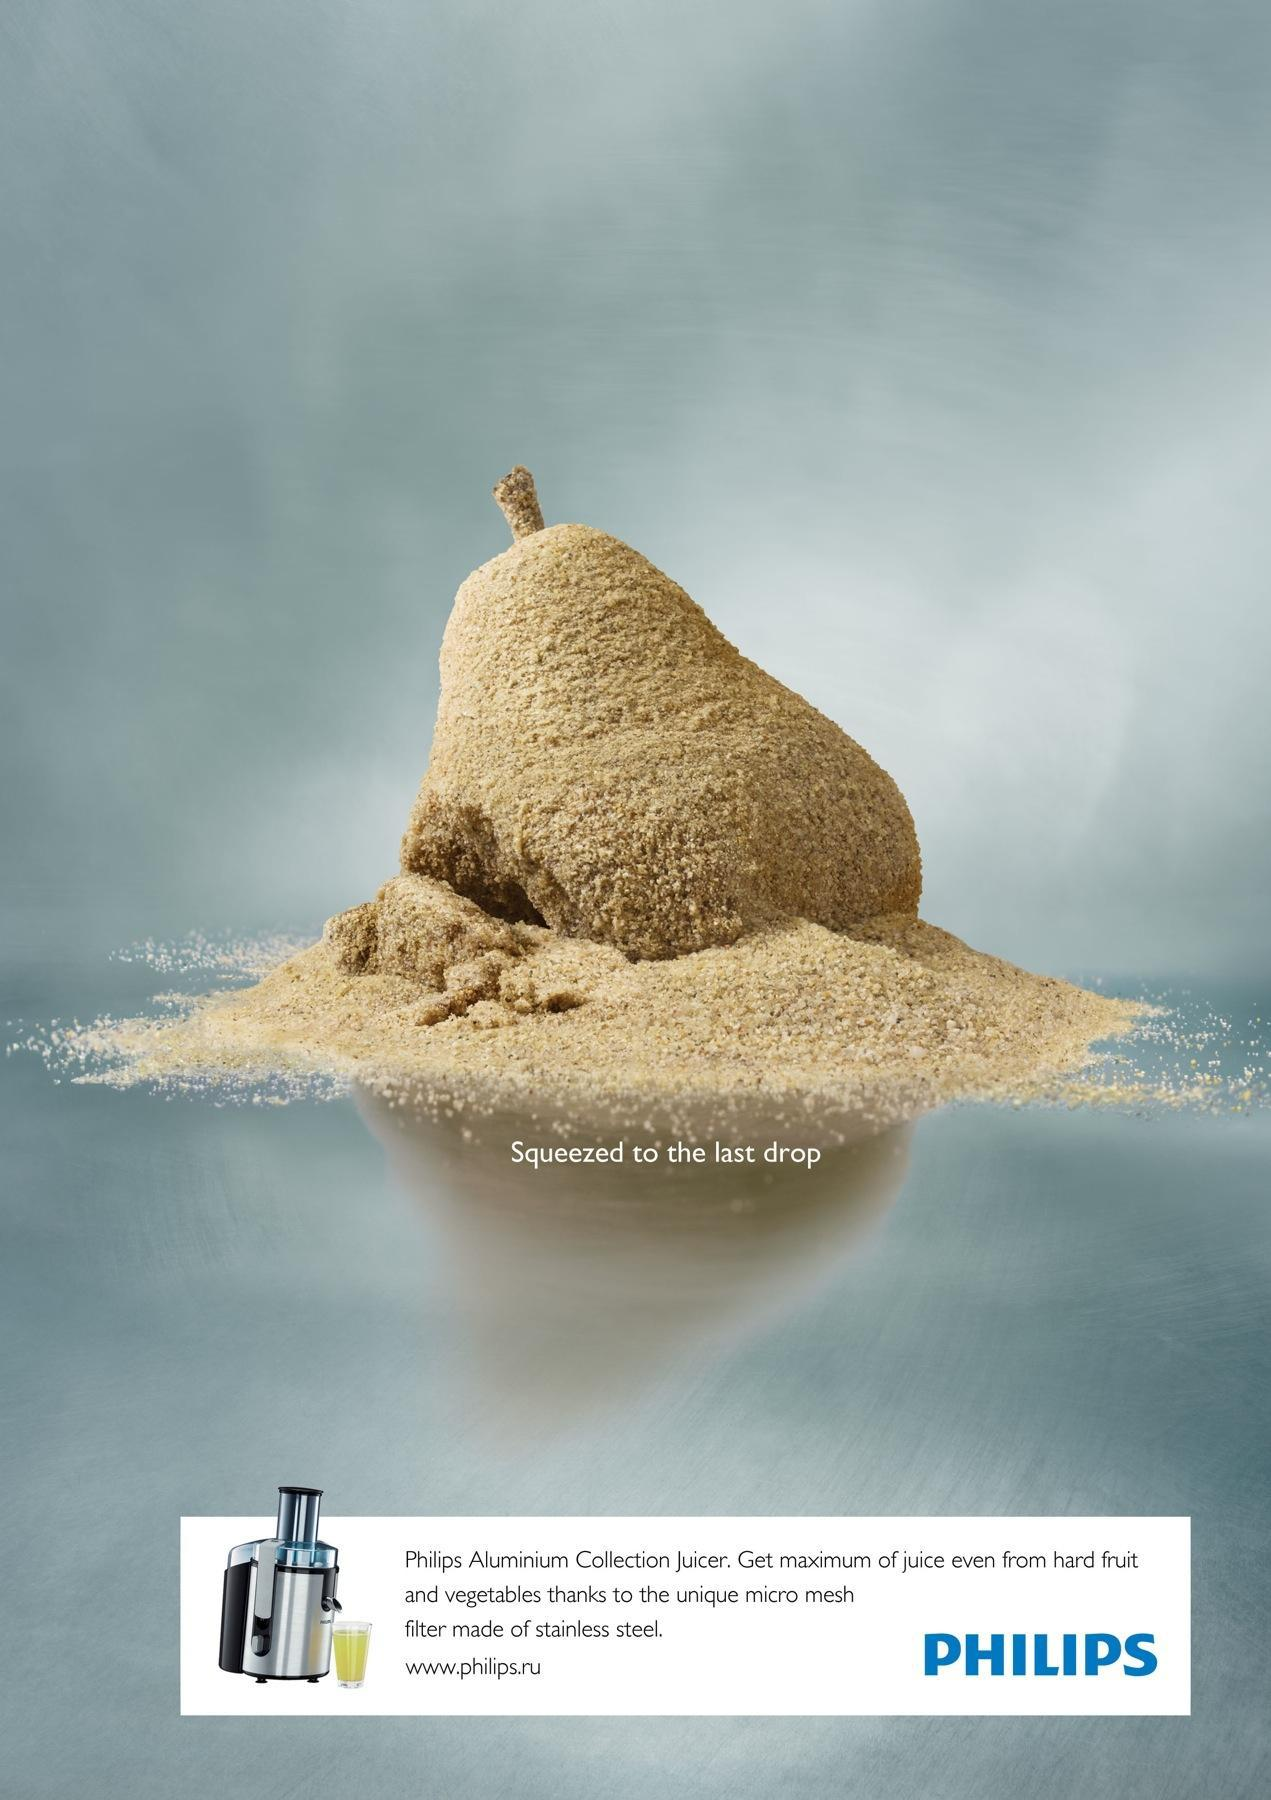 Foreign creative advertising8